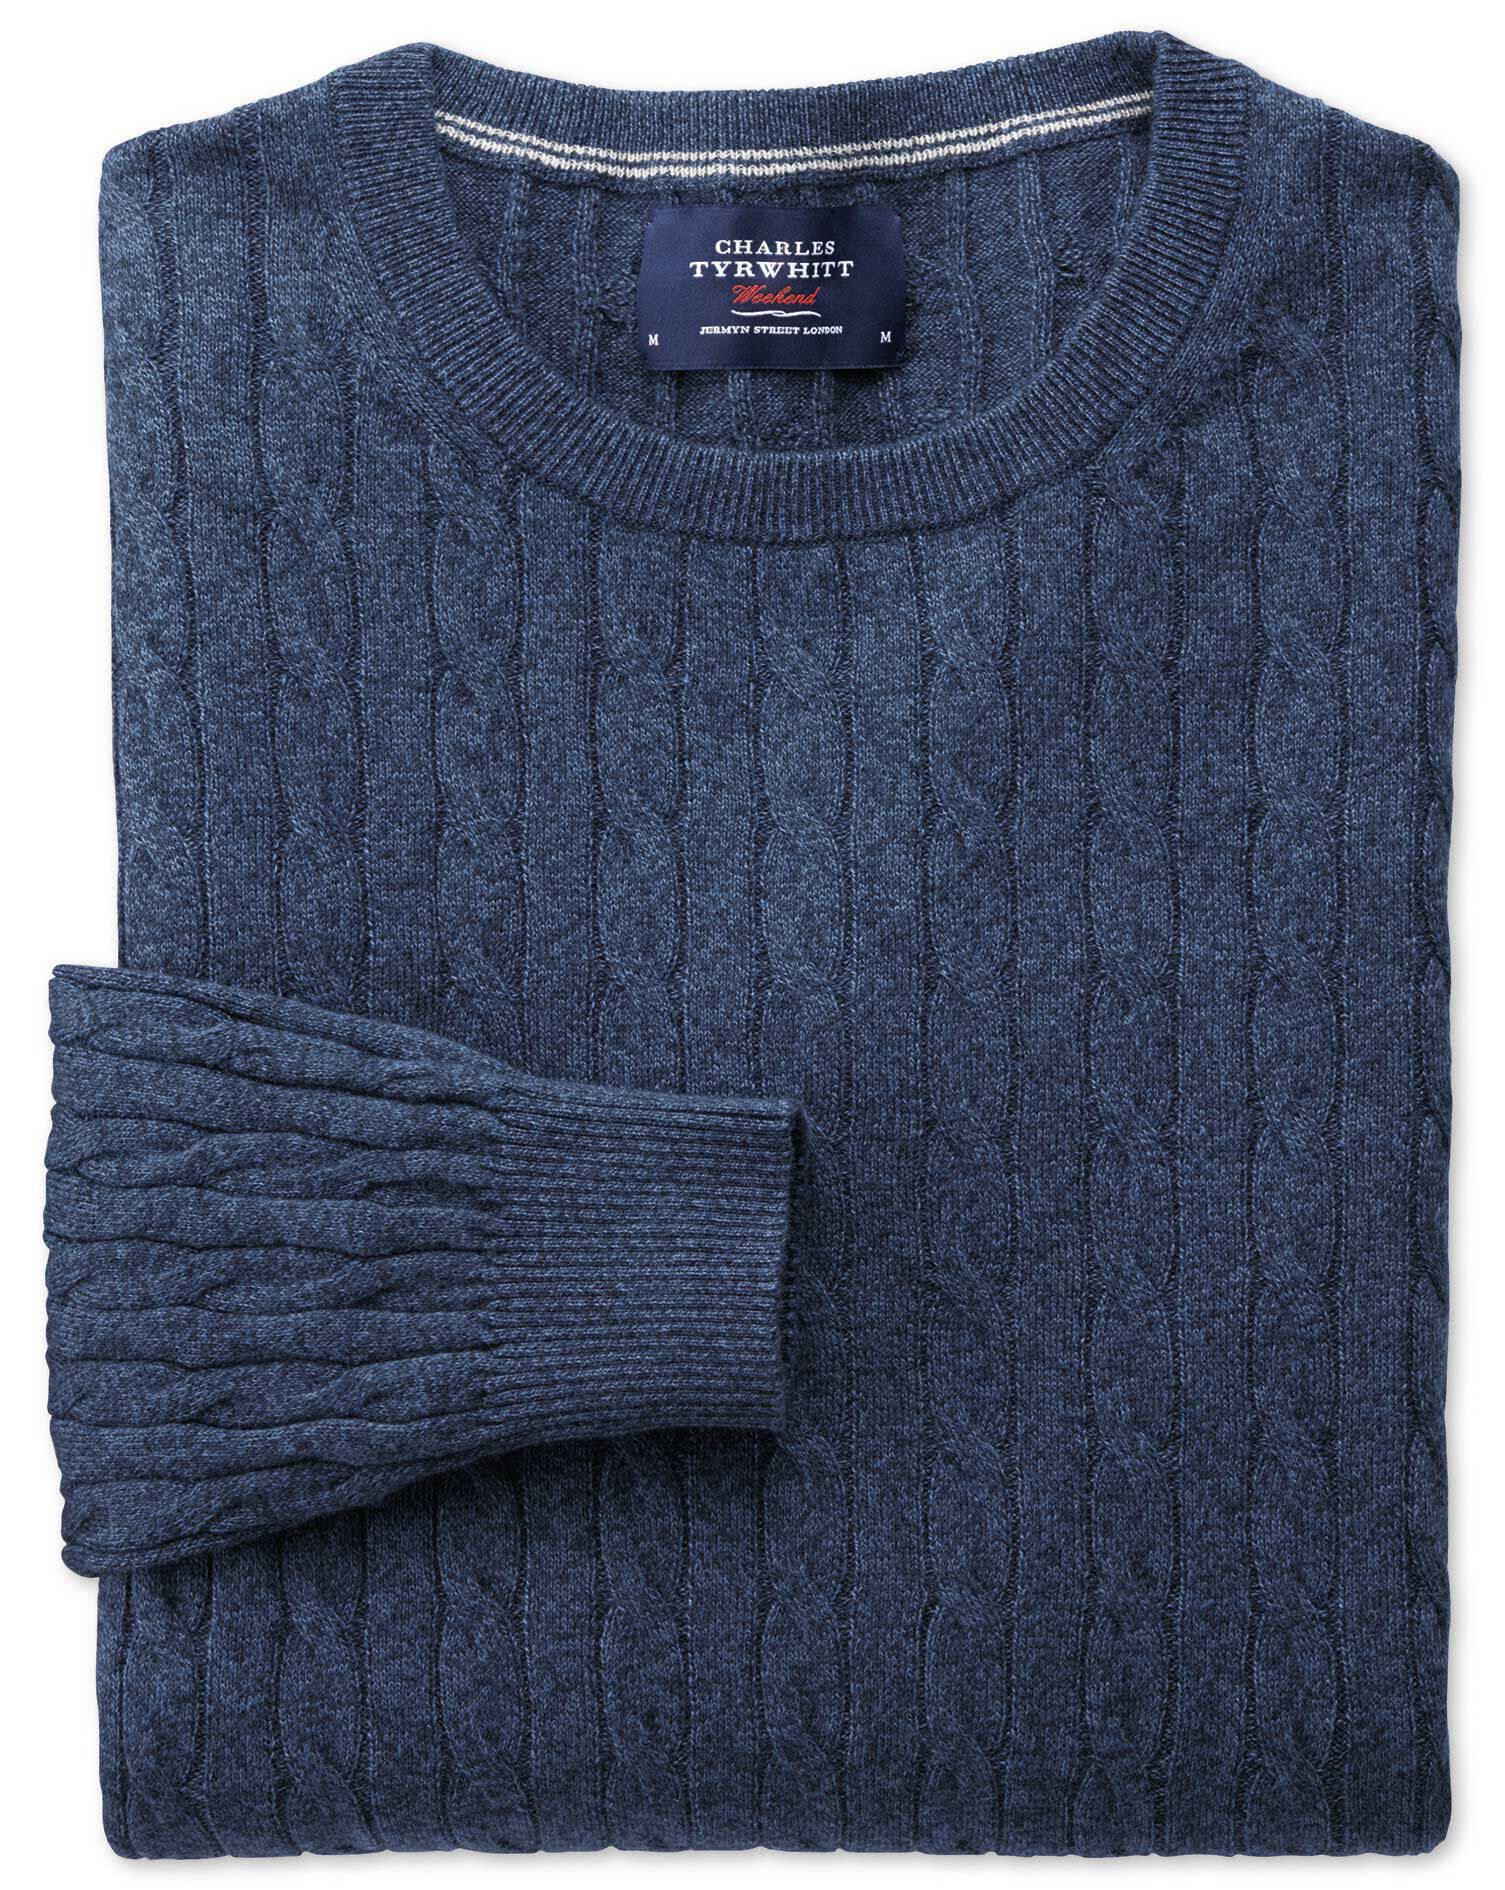 Indigo Cotton Cashmere Cable Crew Neck Jumper Size XL by Charles Tyrwhitt